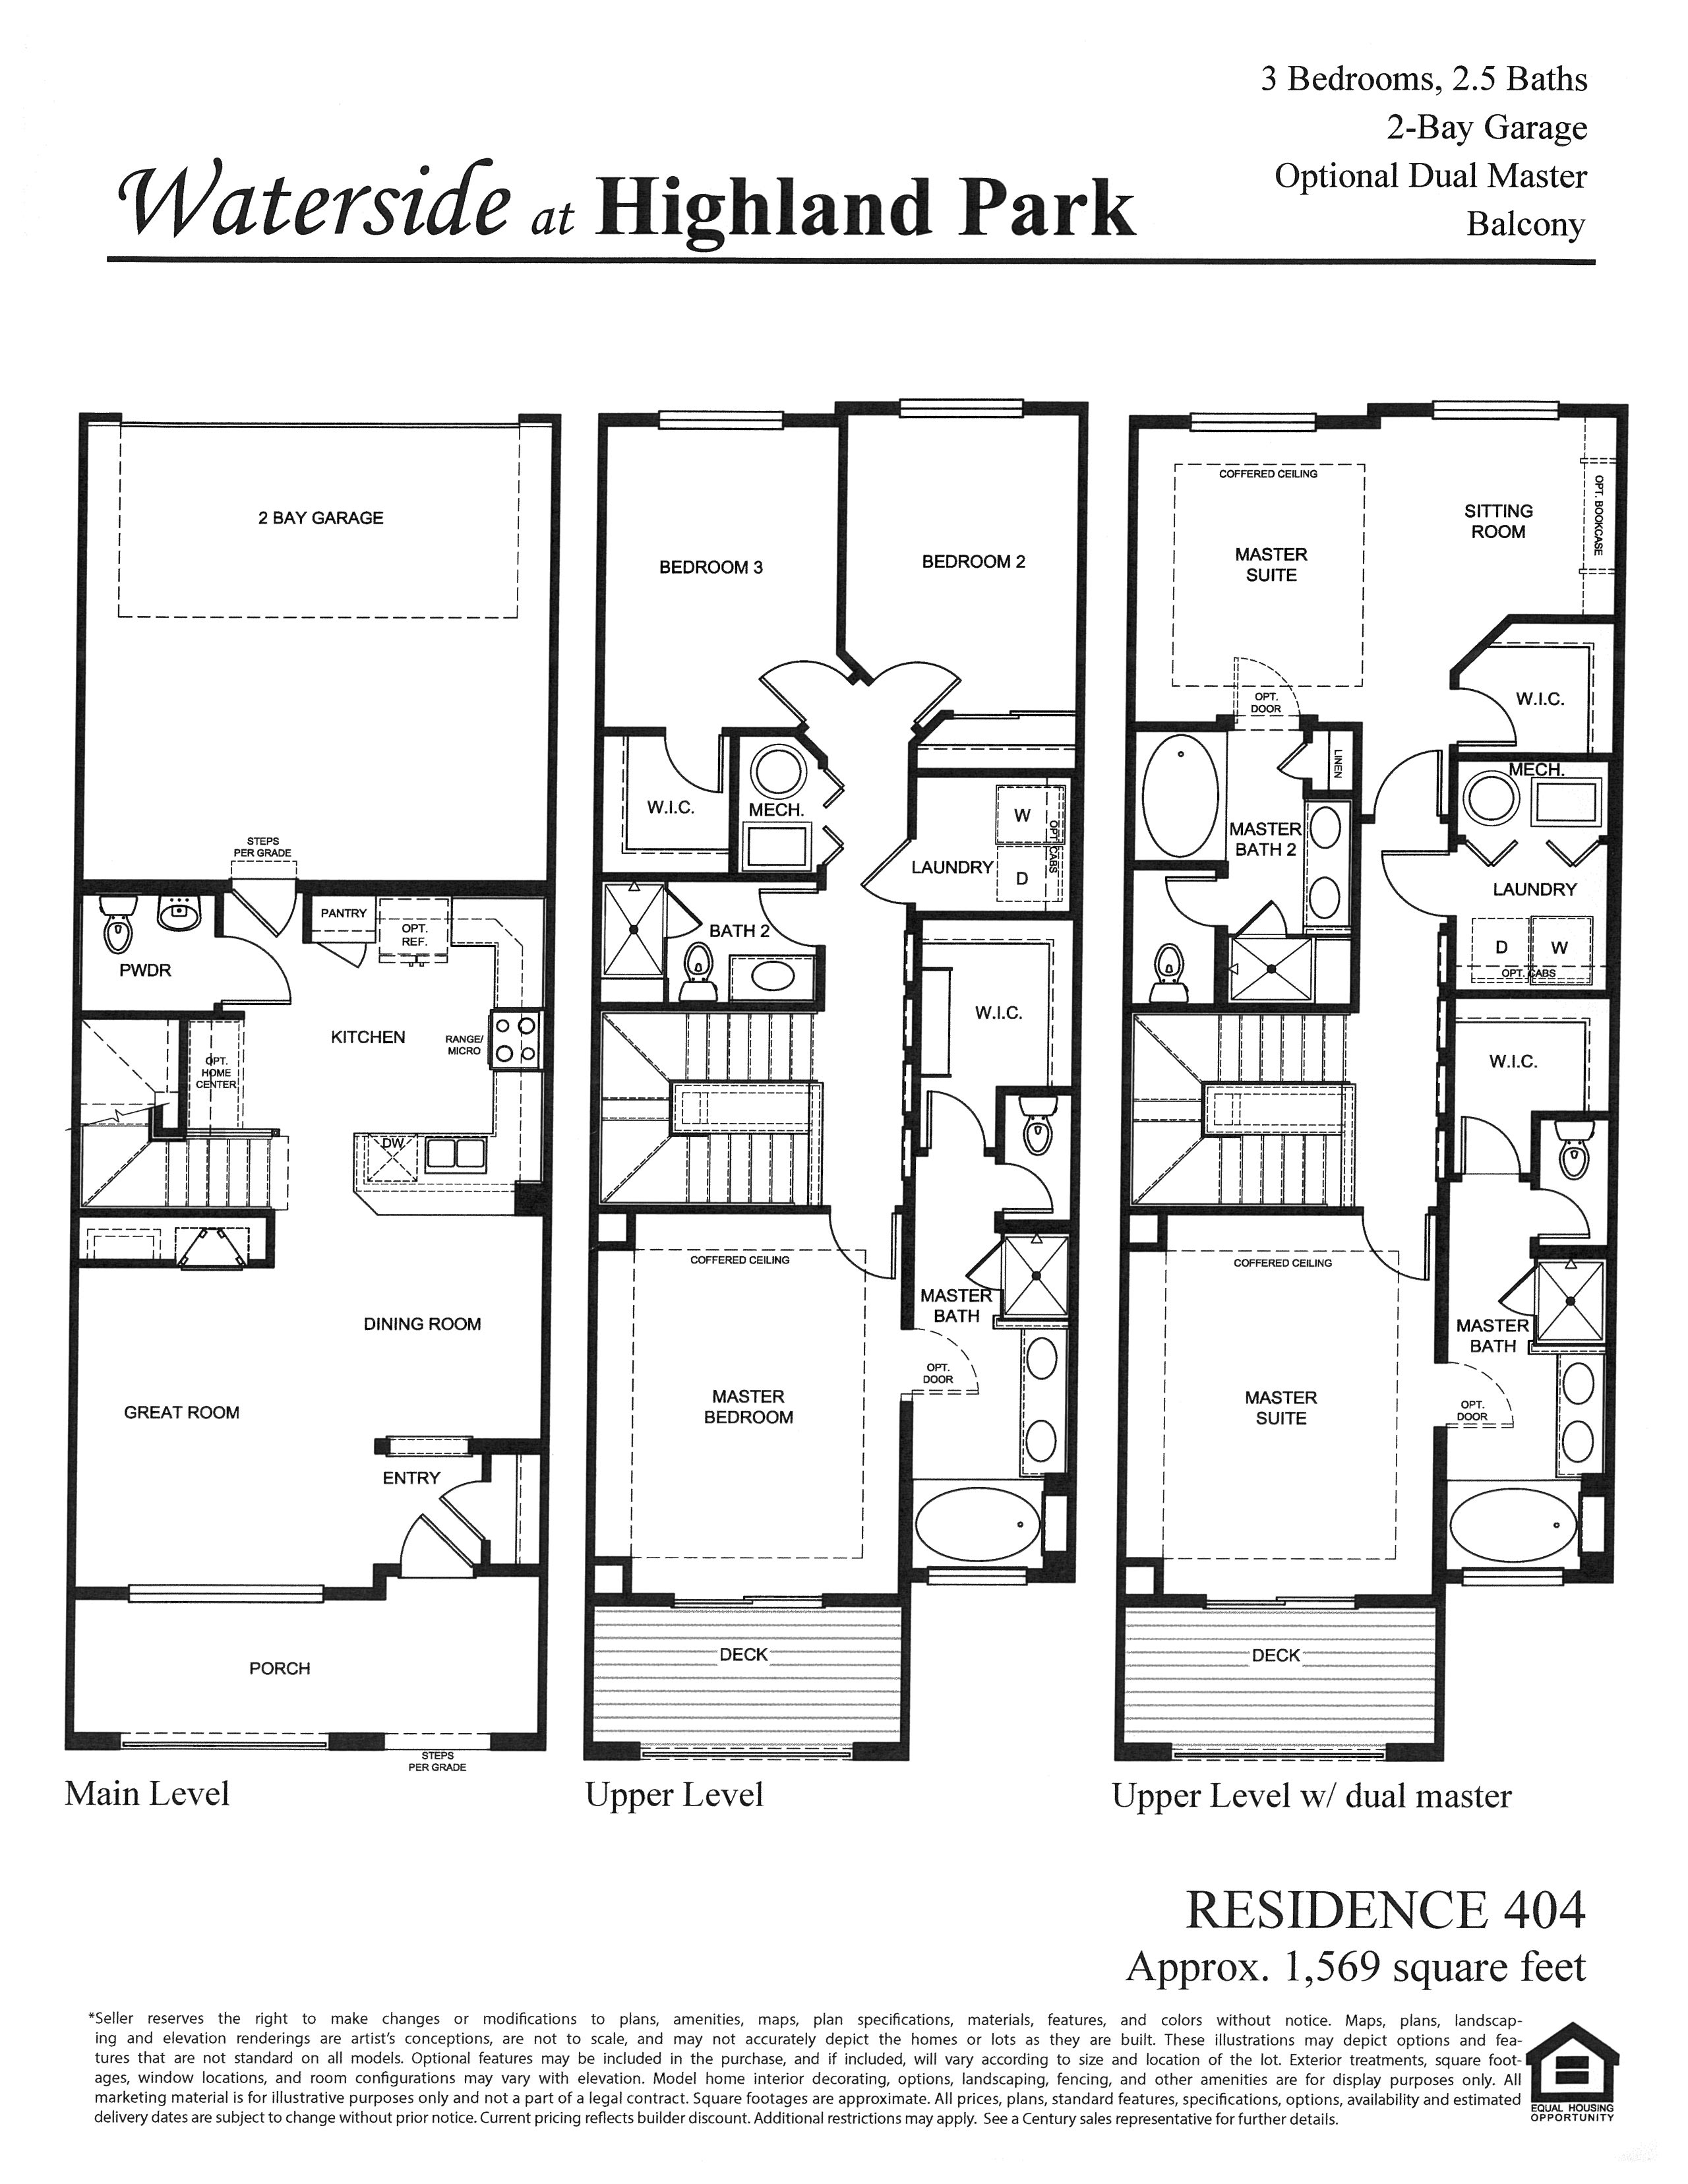 Waterside at Highland Park Floor Plan Residence 404 in Centennial, CO